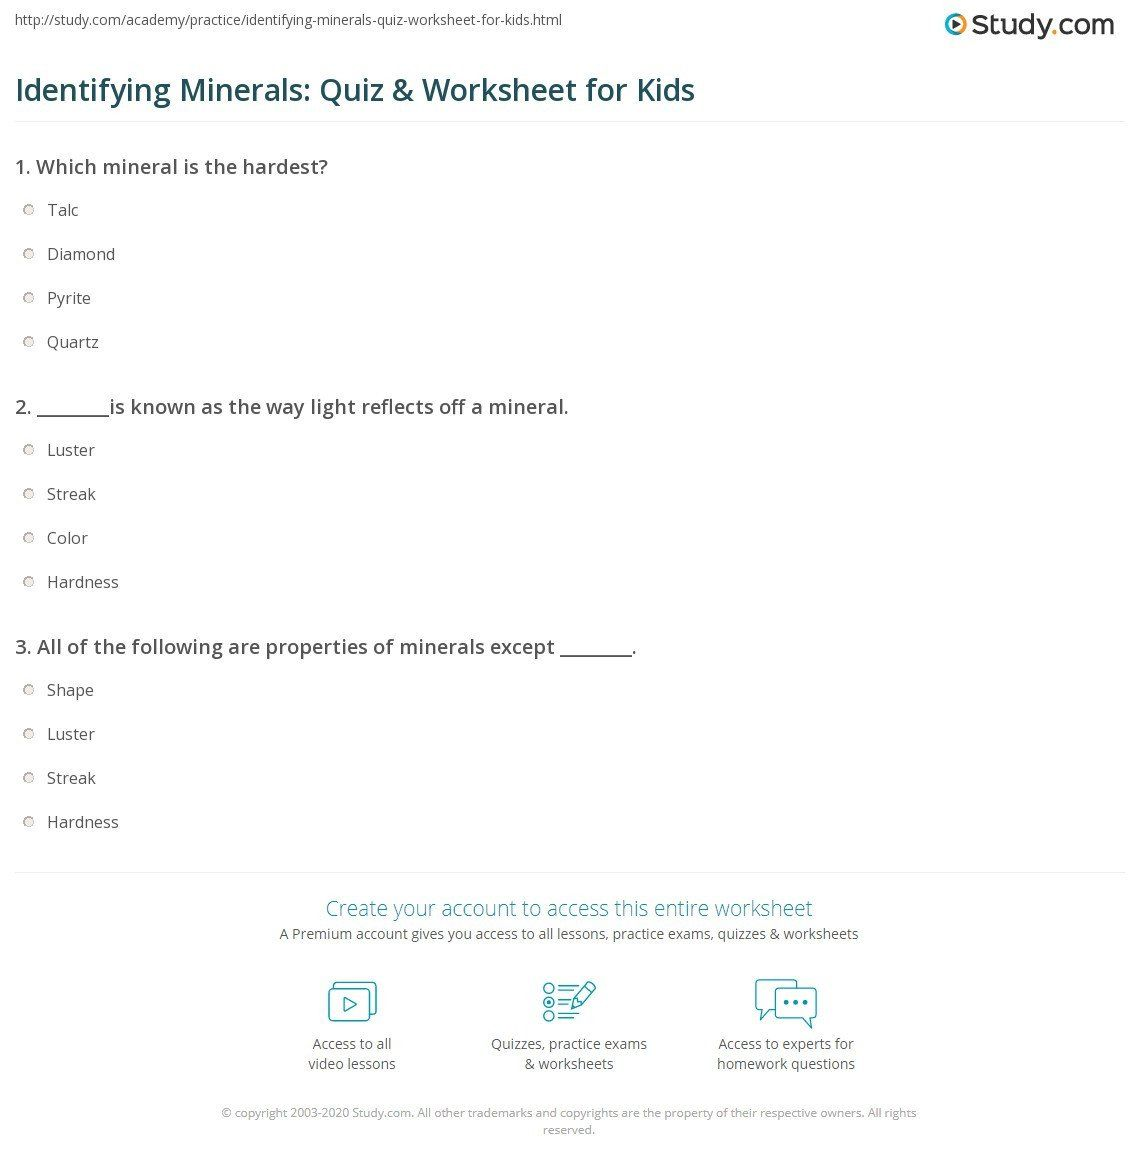 Mineral Identification Worksheet Answers Identifying